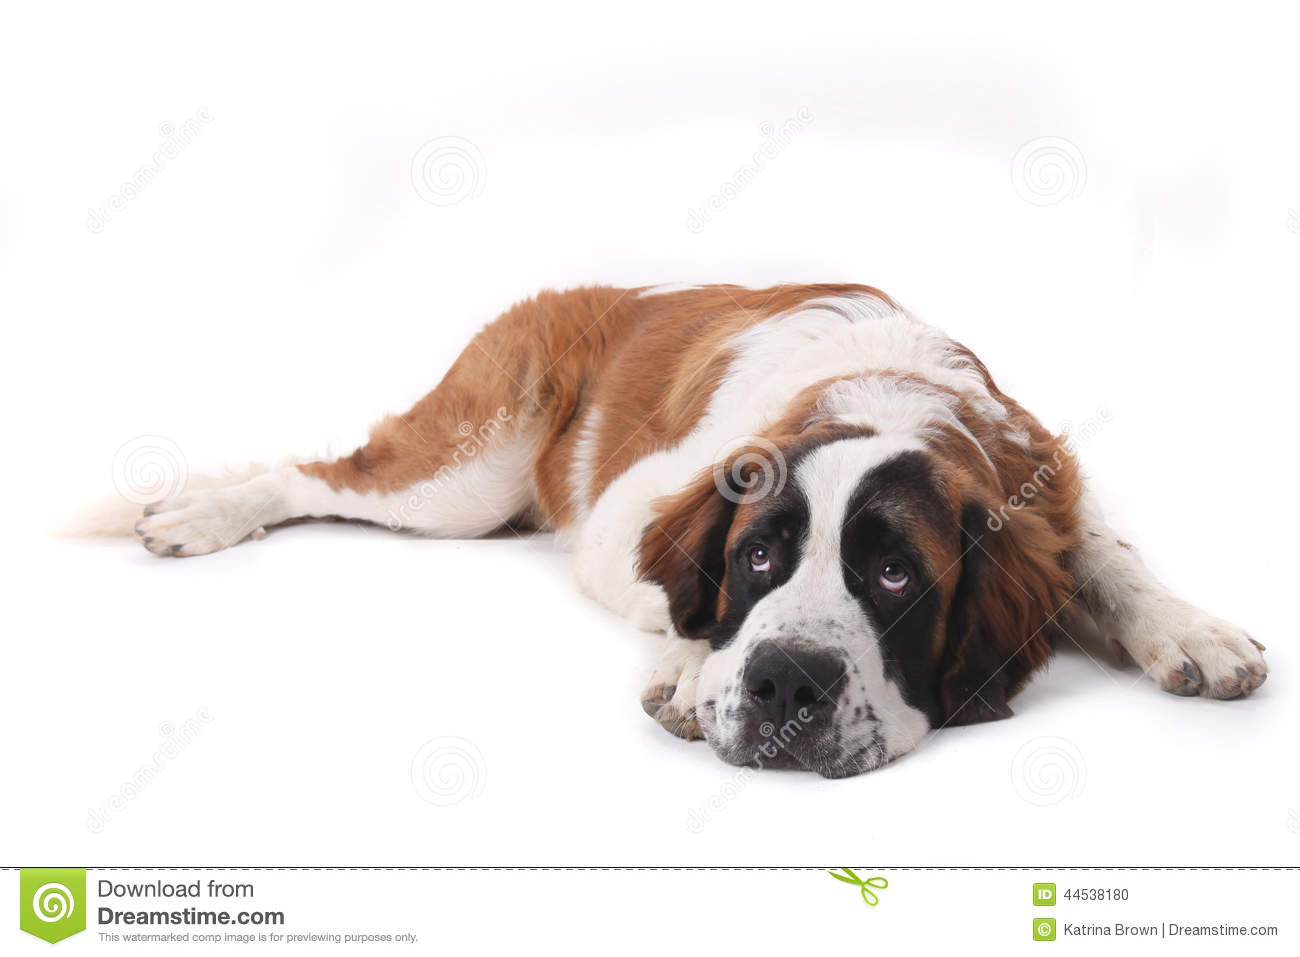 crushed dreams of having a saint bernard pup The saint bernard is unquestionably an attention-getter the st bernard is a dog with a long and romantic history there can be difficulties if young puppies are fed too rich a diet and grow too fast.